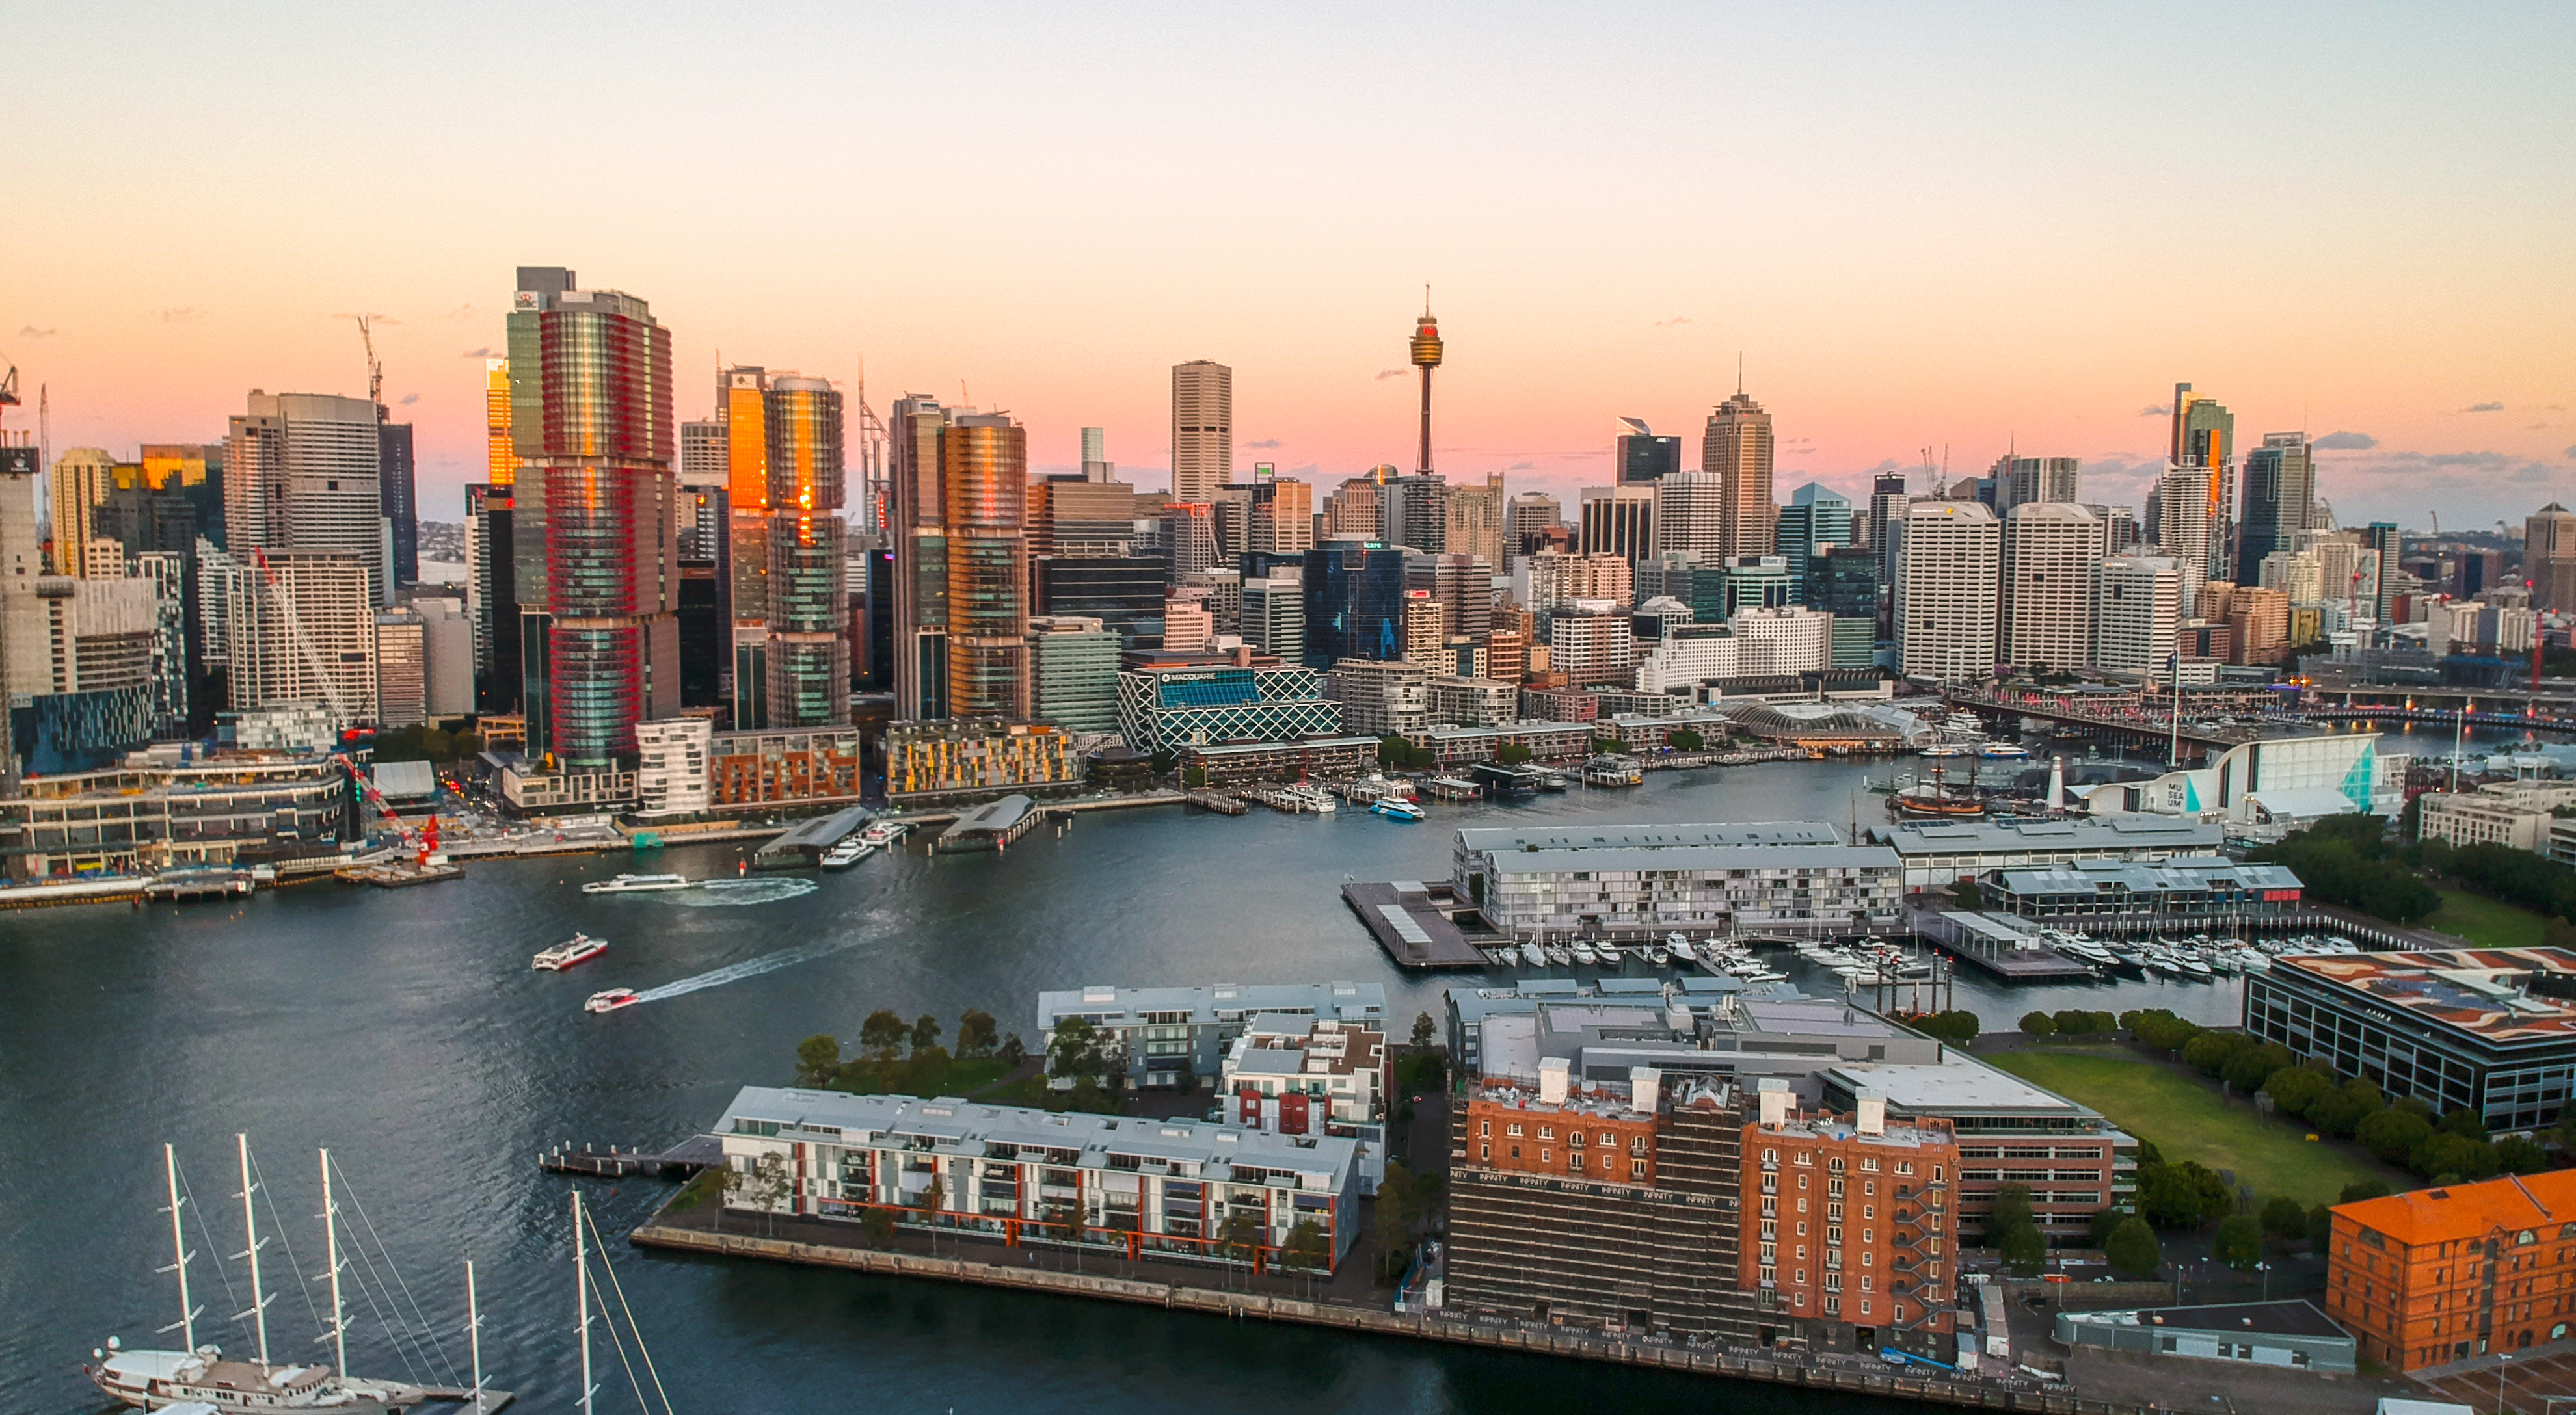 2019-04-10 Sydney CBD view from Pyrmont at sunset.jpg